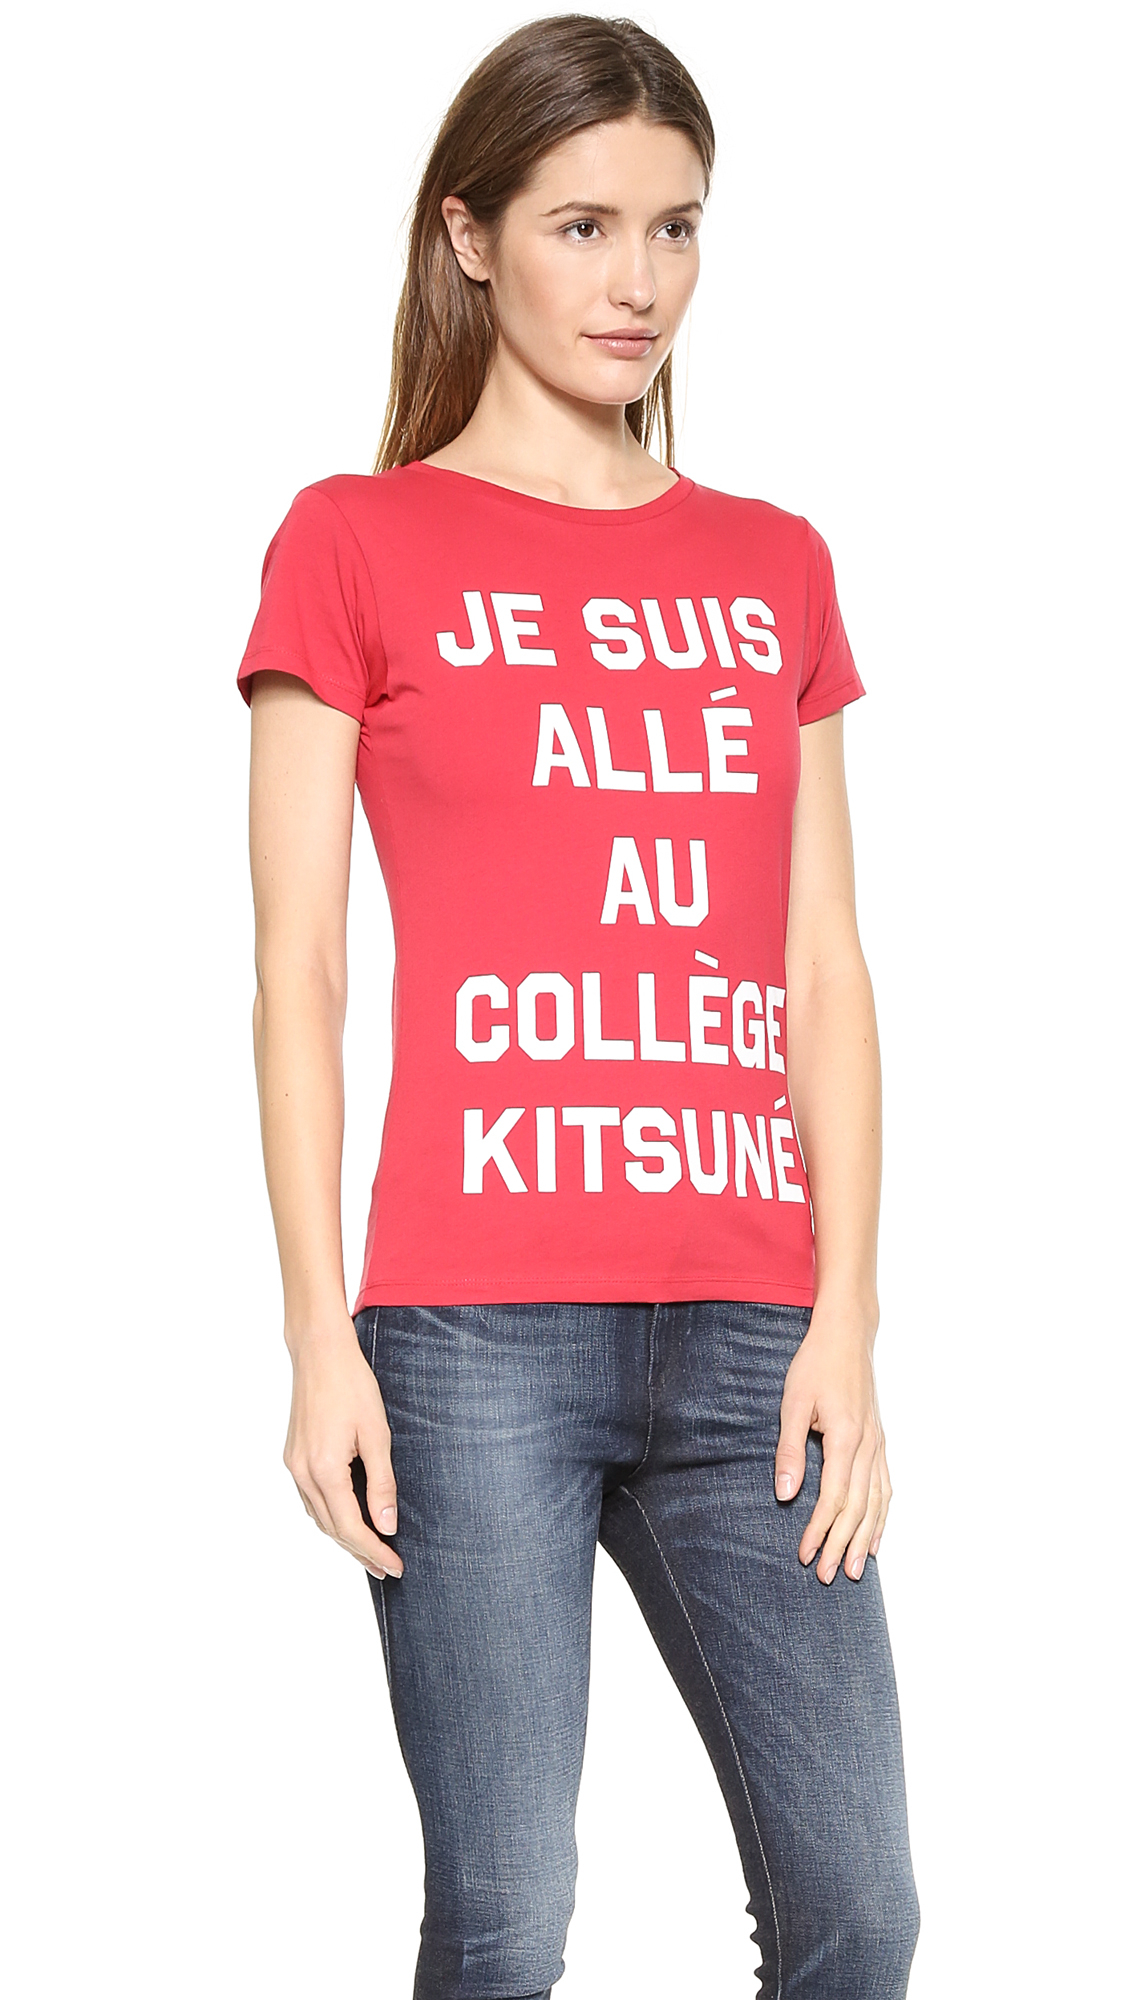 lyst maison kitsun 39 je suis alle 39 tee shirt red white in red. Black Bedroom Furniture Sets. Home Design Ideas